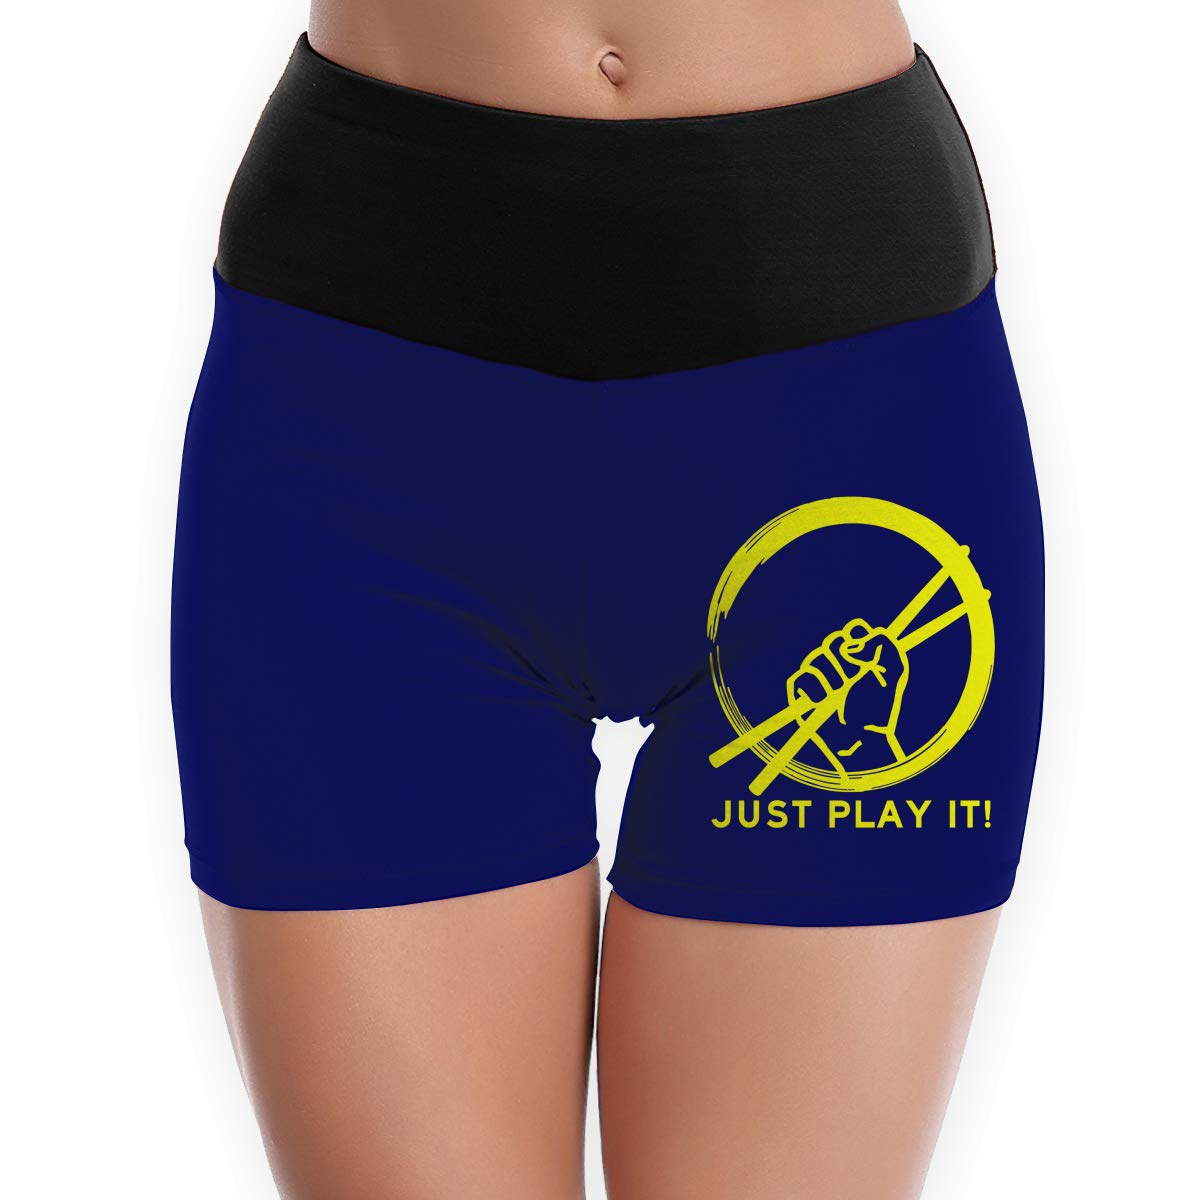 JUST Play IT Drumsticks Drummer Funny Adult Womens Yoga Running Hot Shorts Pants